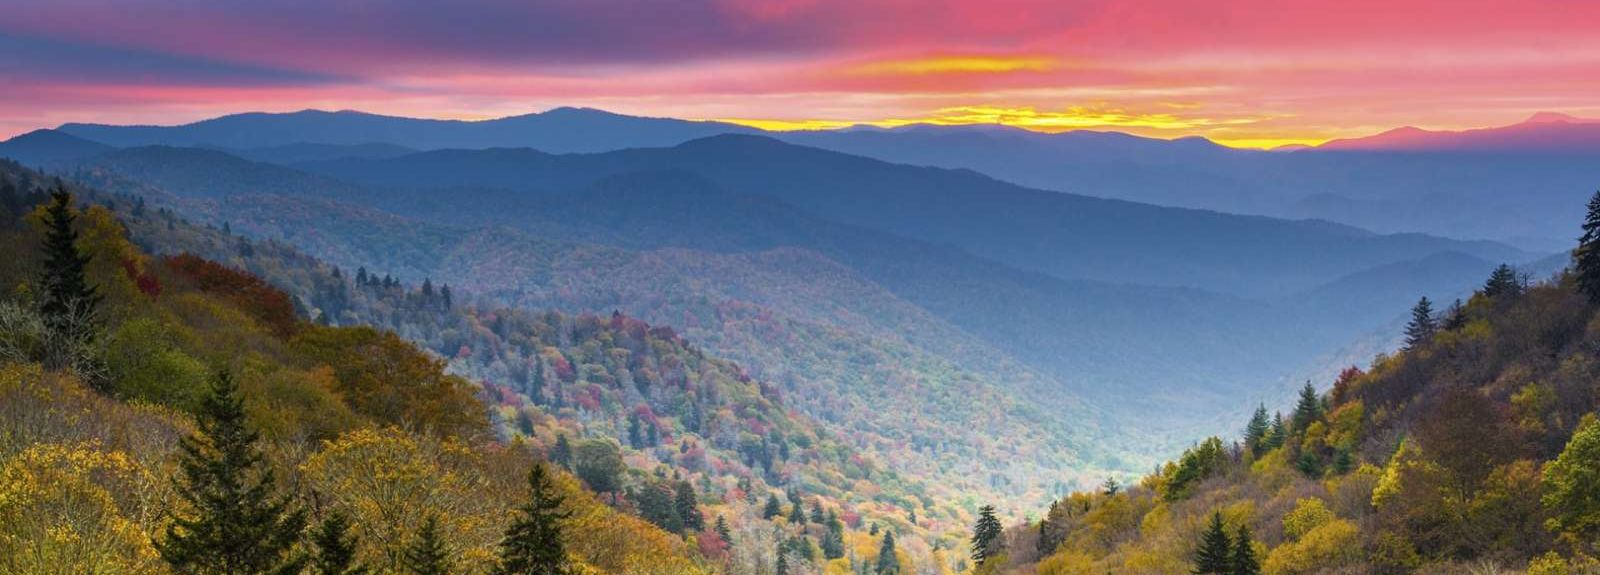 Great Smoky Mountains National Park, United States of America